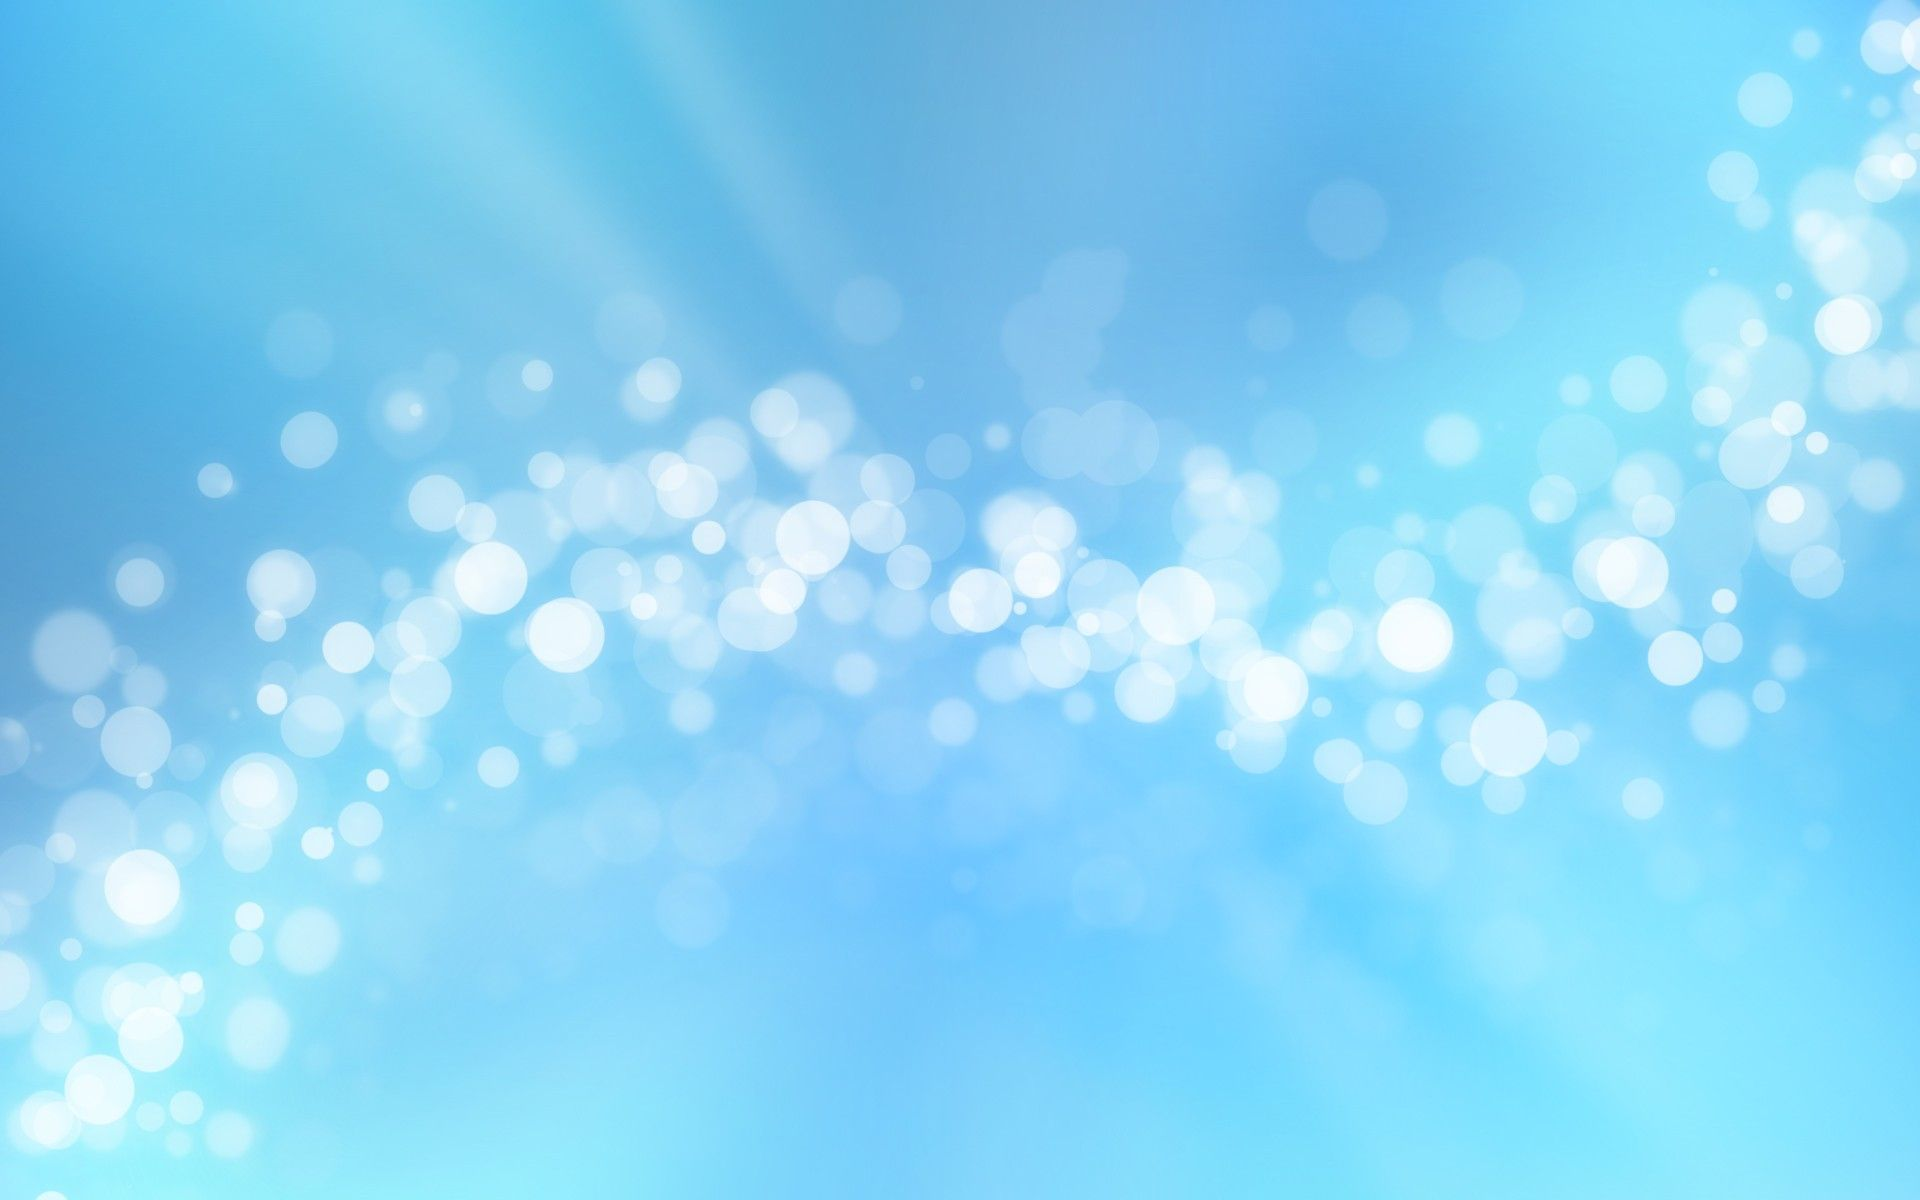 Stock Photo Watercolor Sky Blue Abstract Abstract Backgrounds